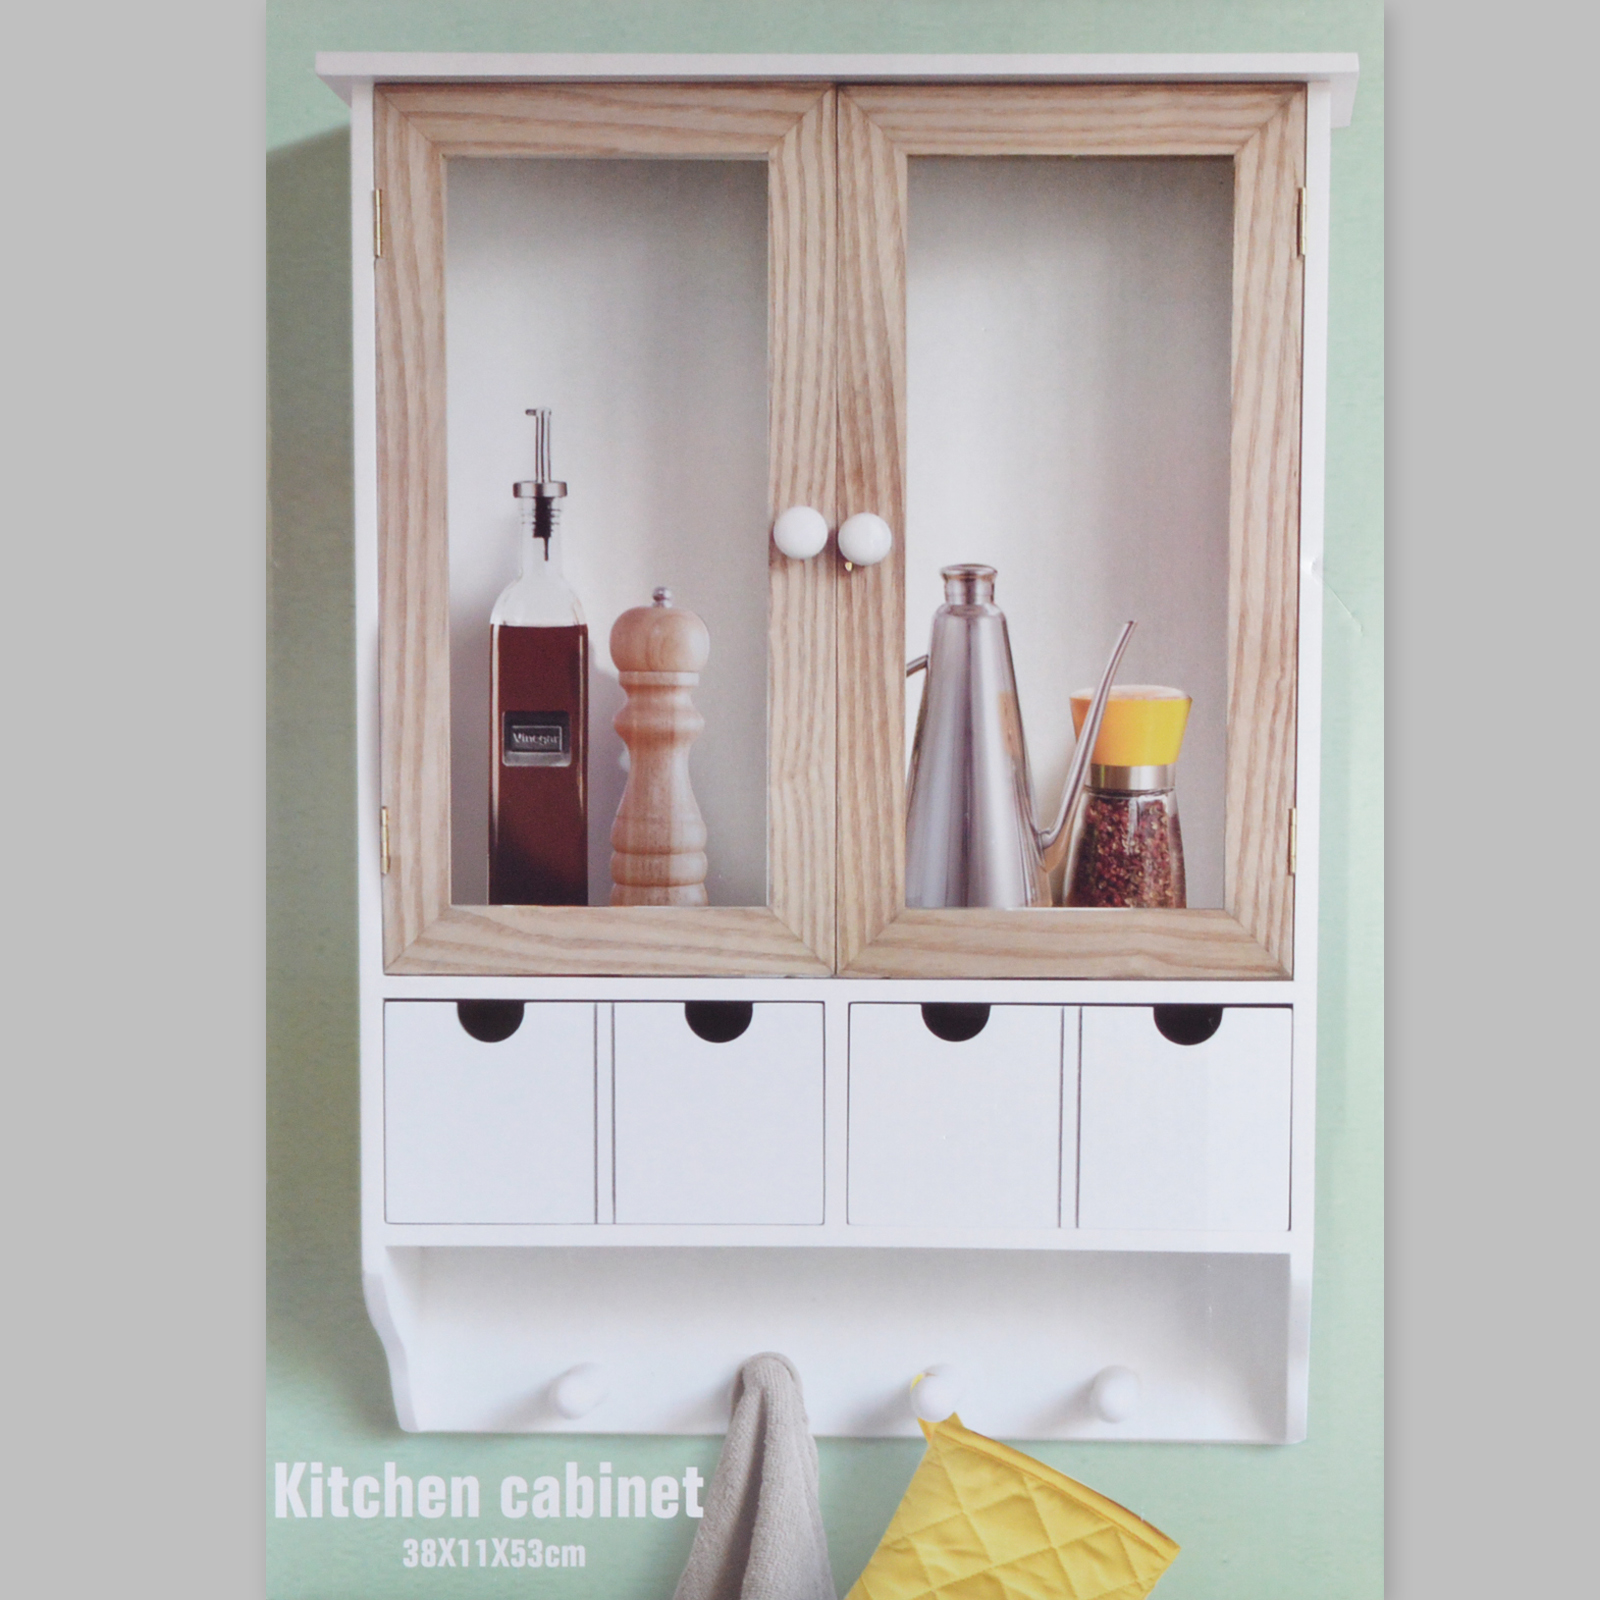 Kitchen cupboard wall cabinet hanging wardrobe 4 hook 4 for Kitchen cabinets ebay